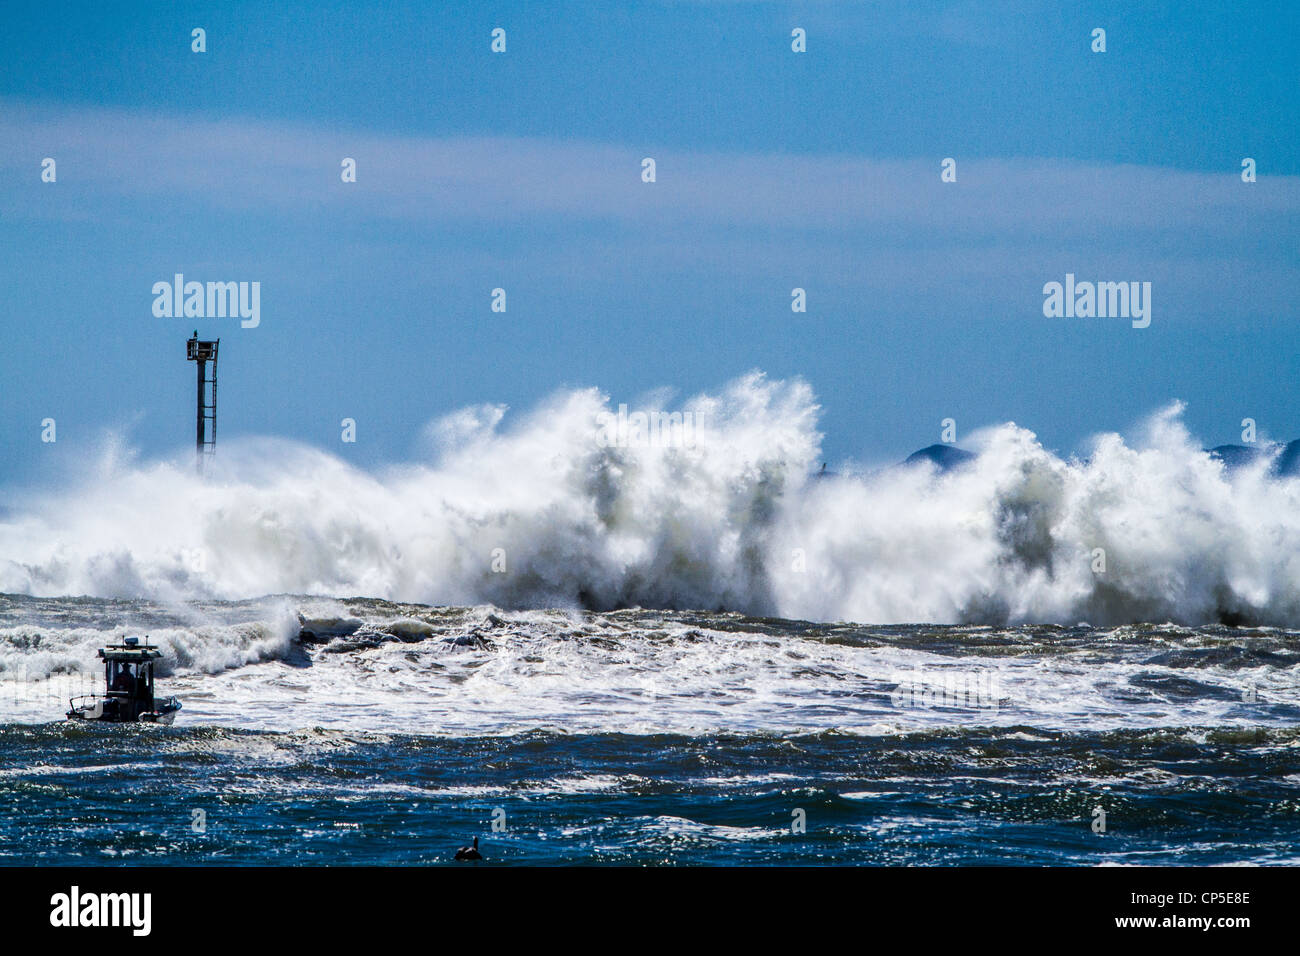 high-winds-and-big-waves-breaking-over-the-jetty-and-breakwater-in-CP5E8E.jpg